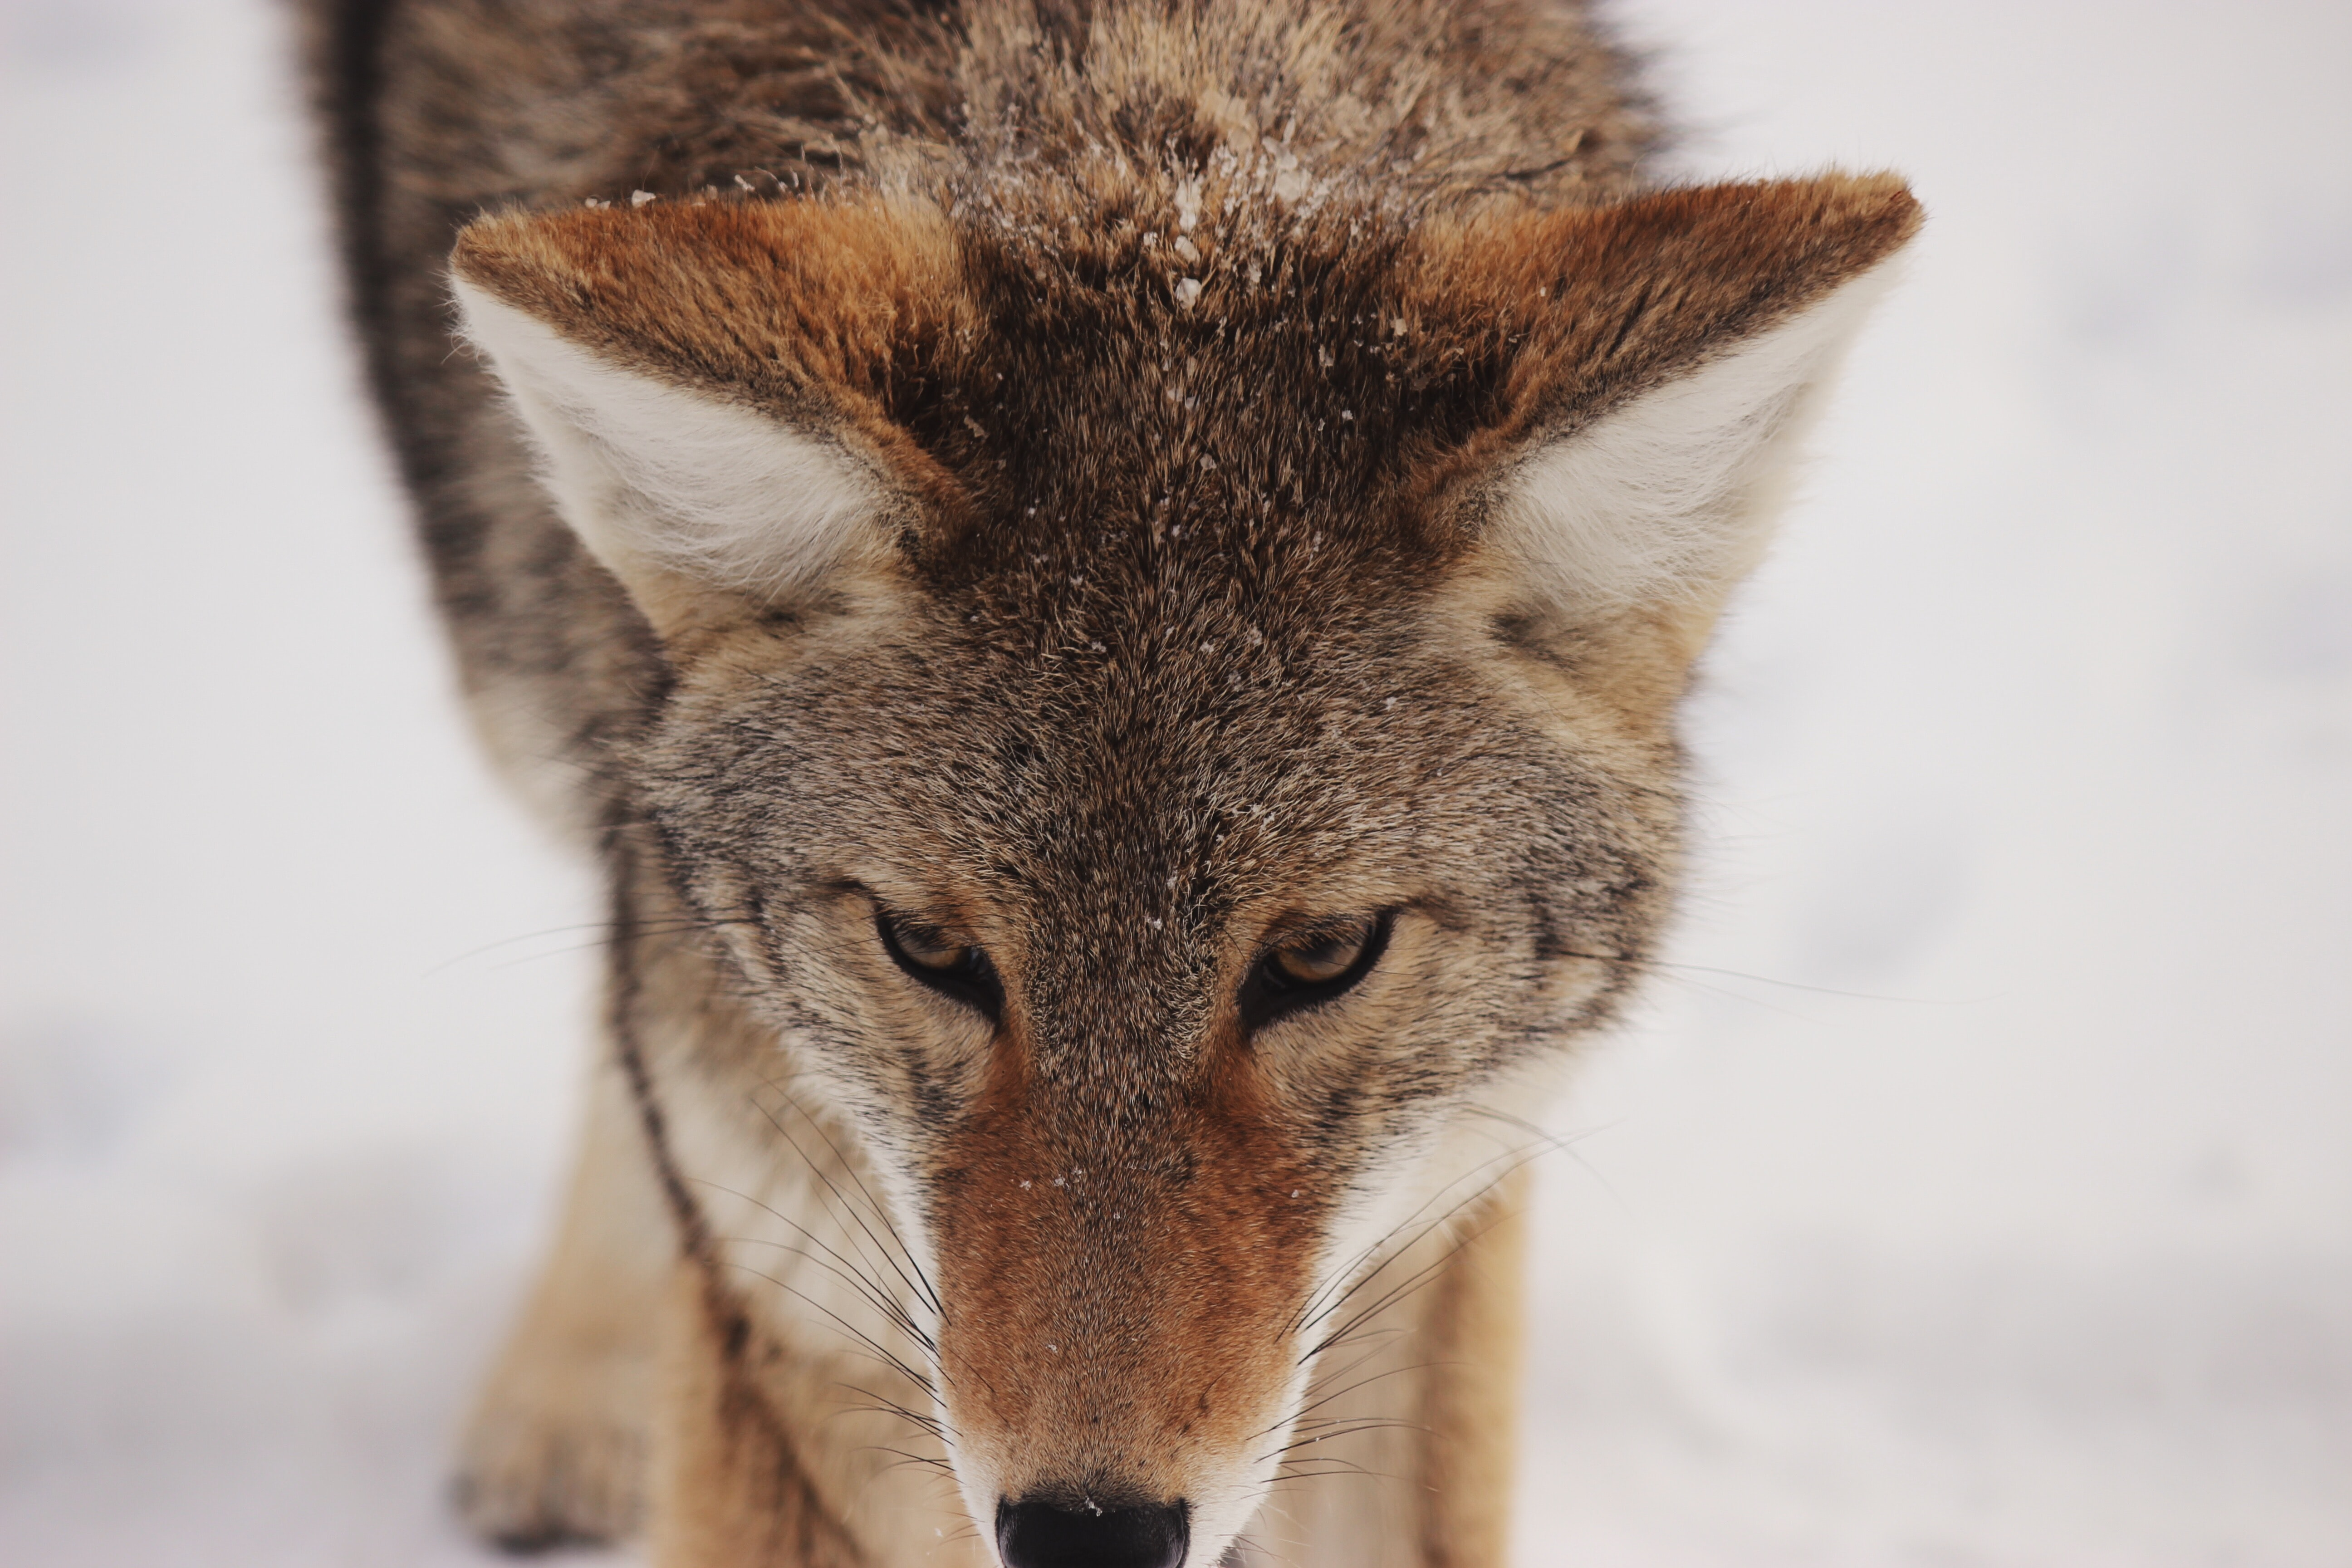 A close-up of a wolf's head against a snowy background